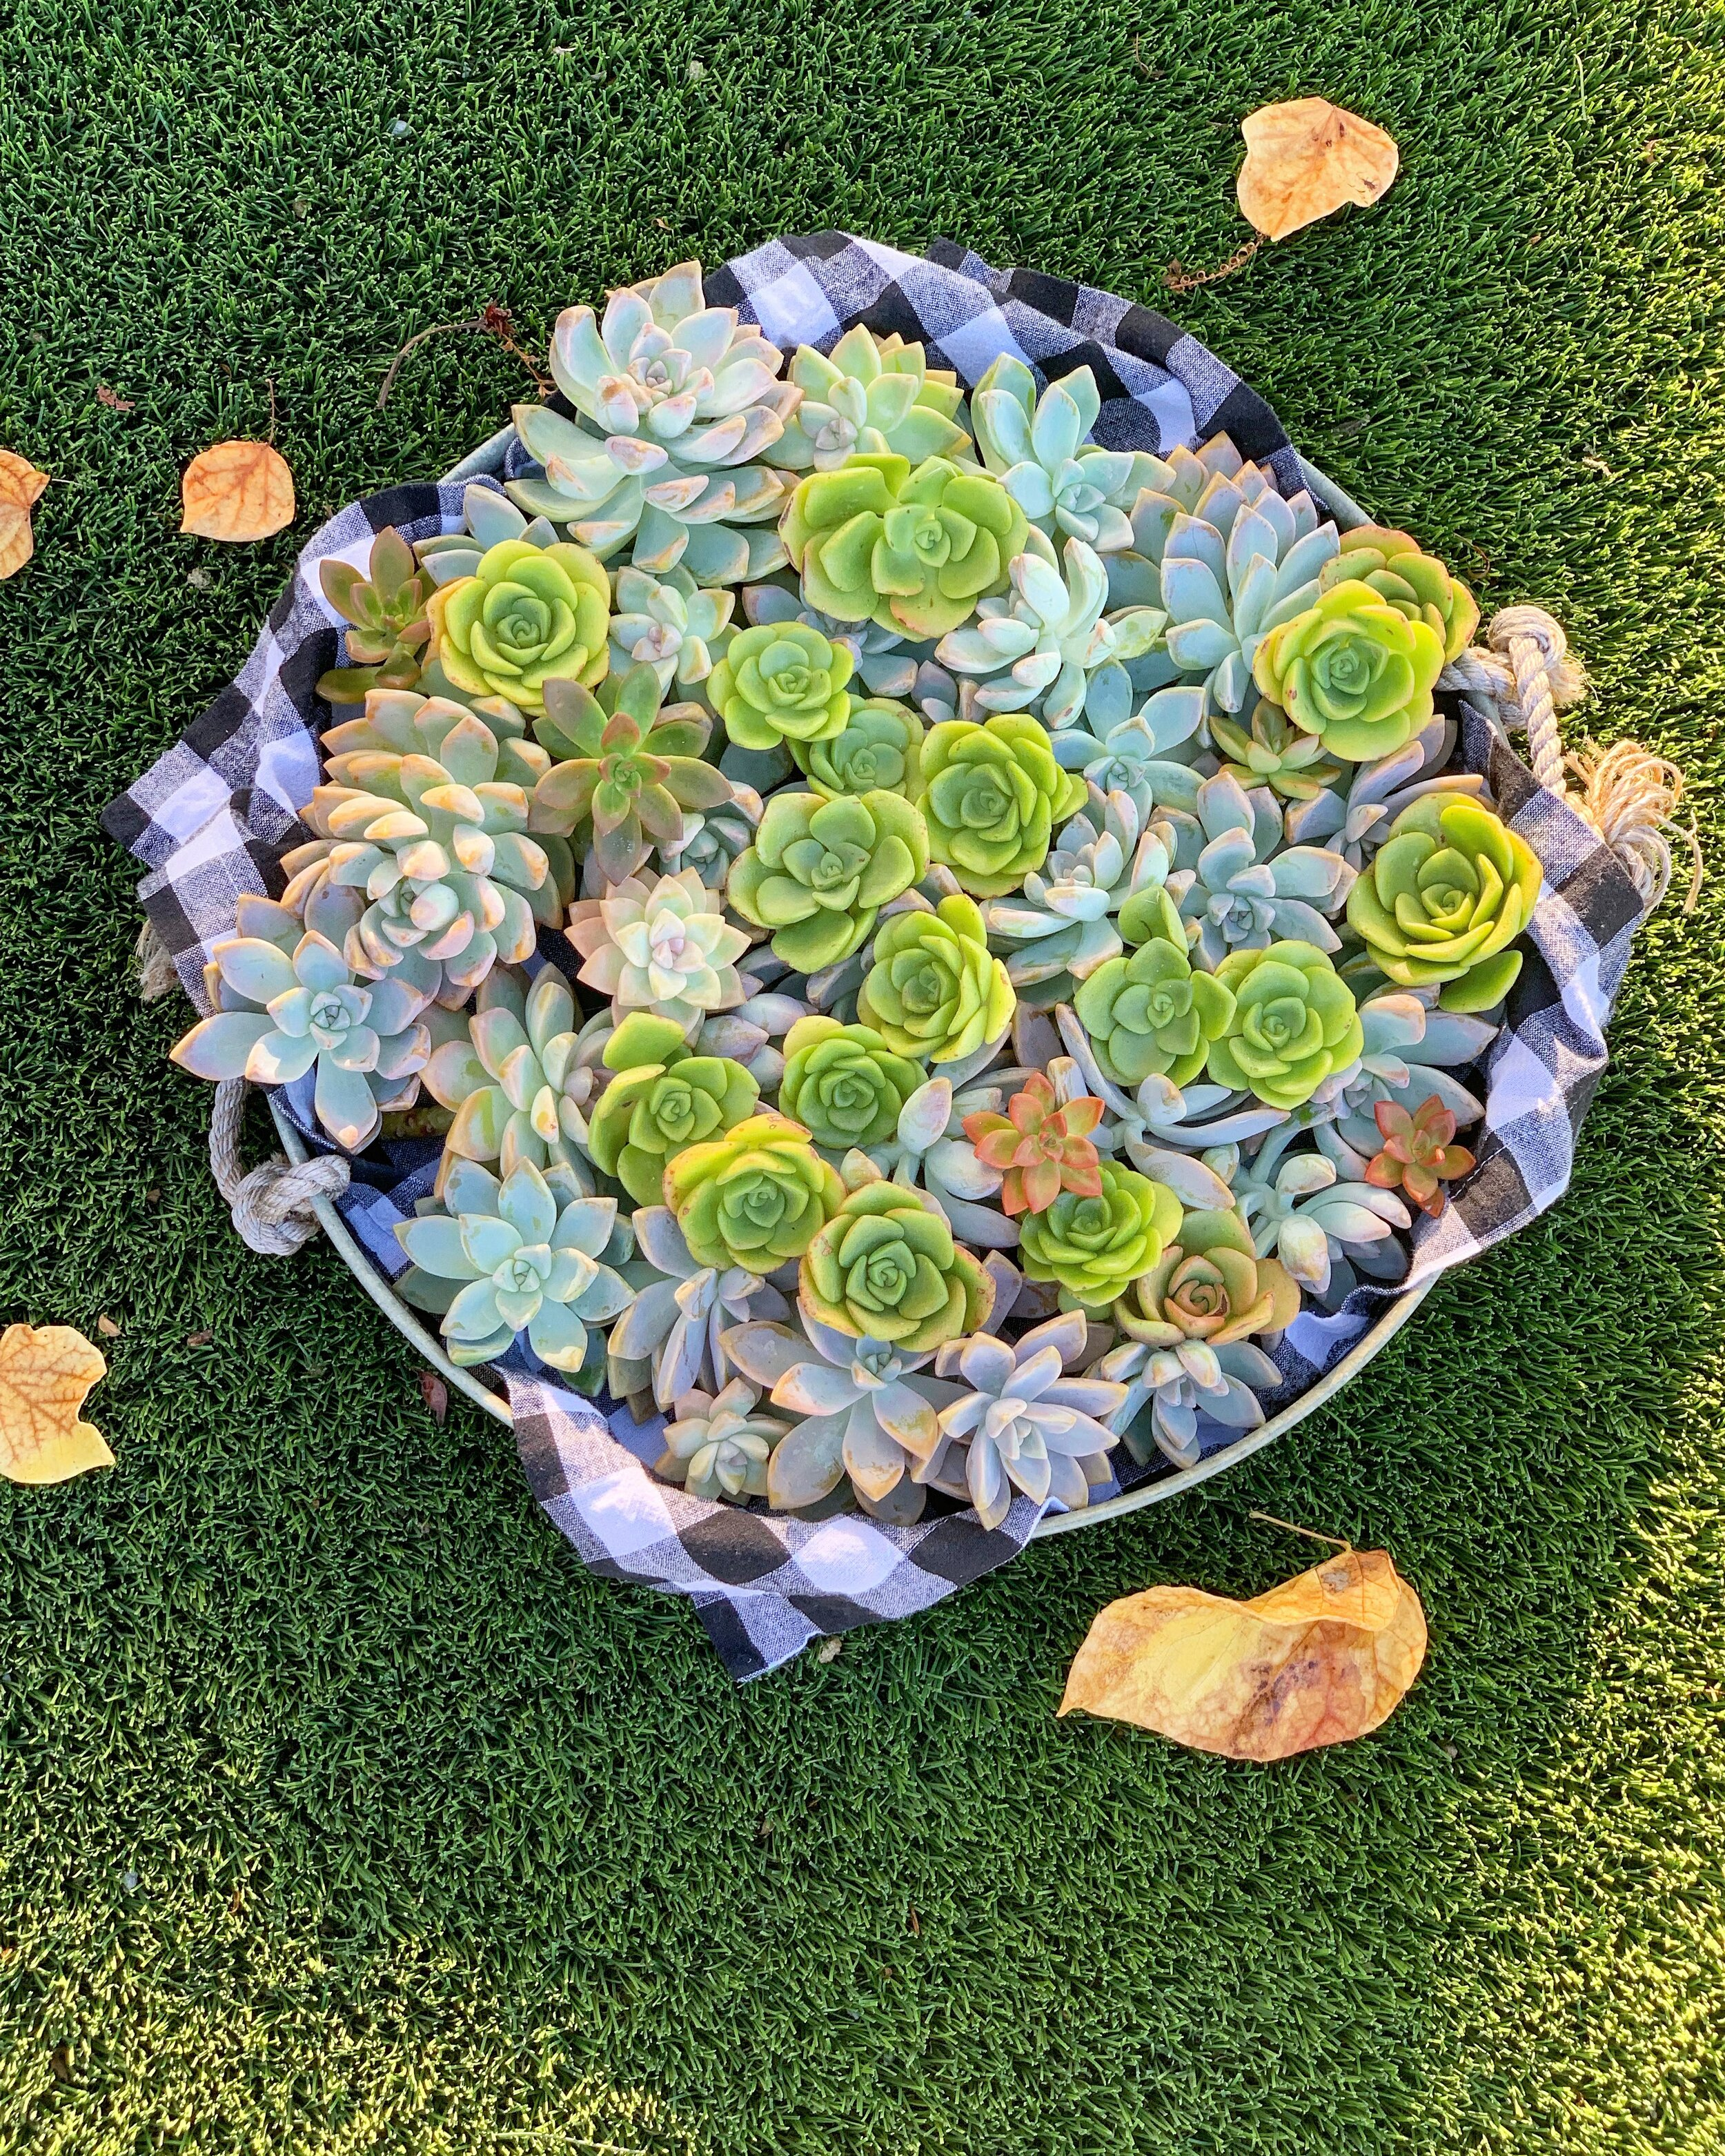 a platter filled with clippings of ghost plants and aeonium lilypad